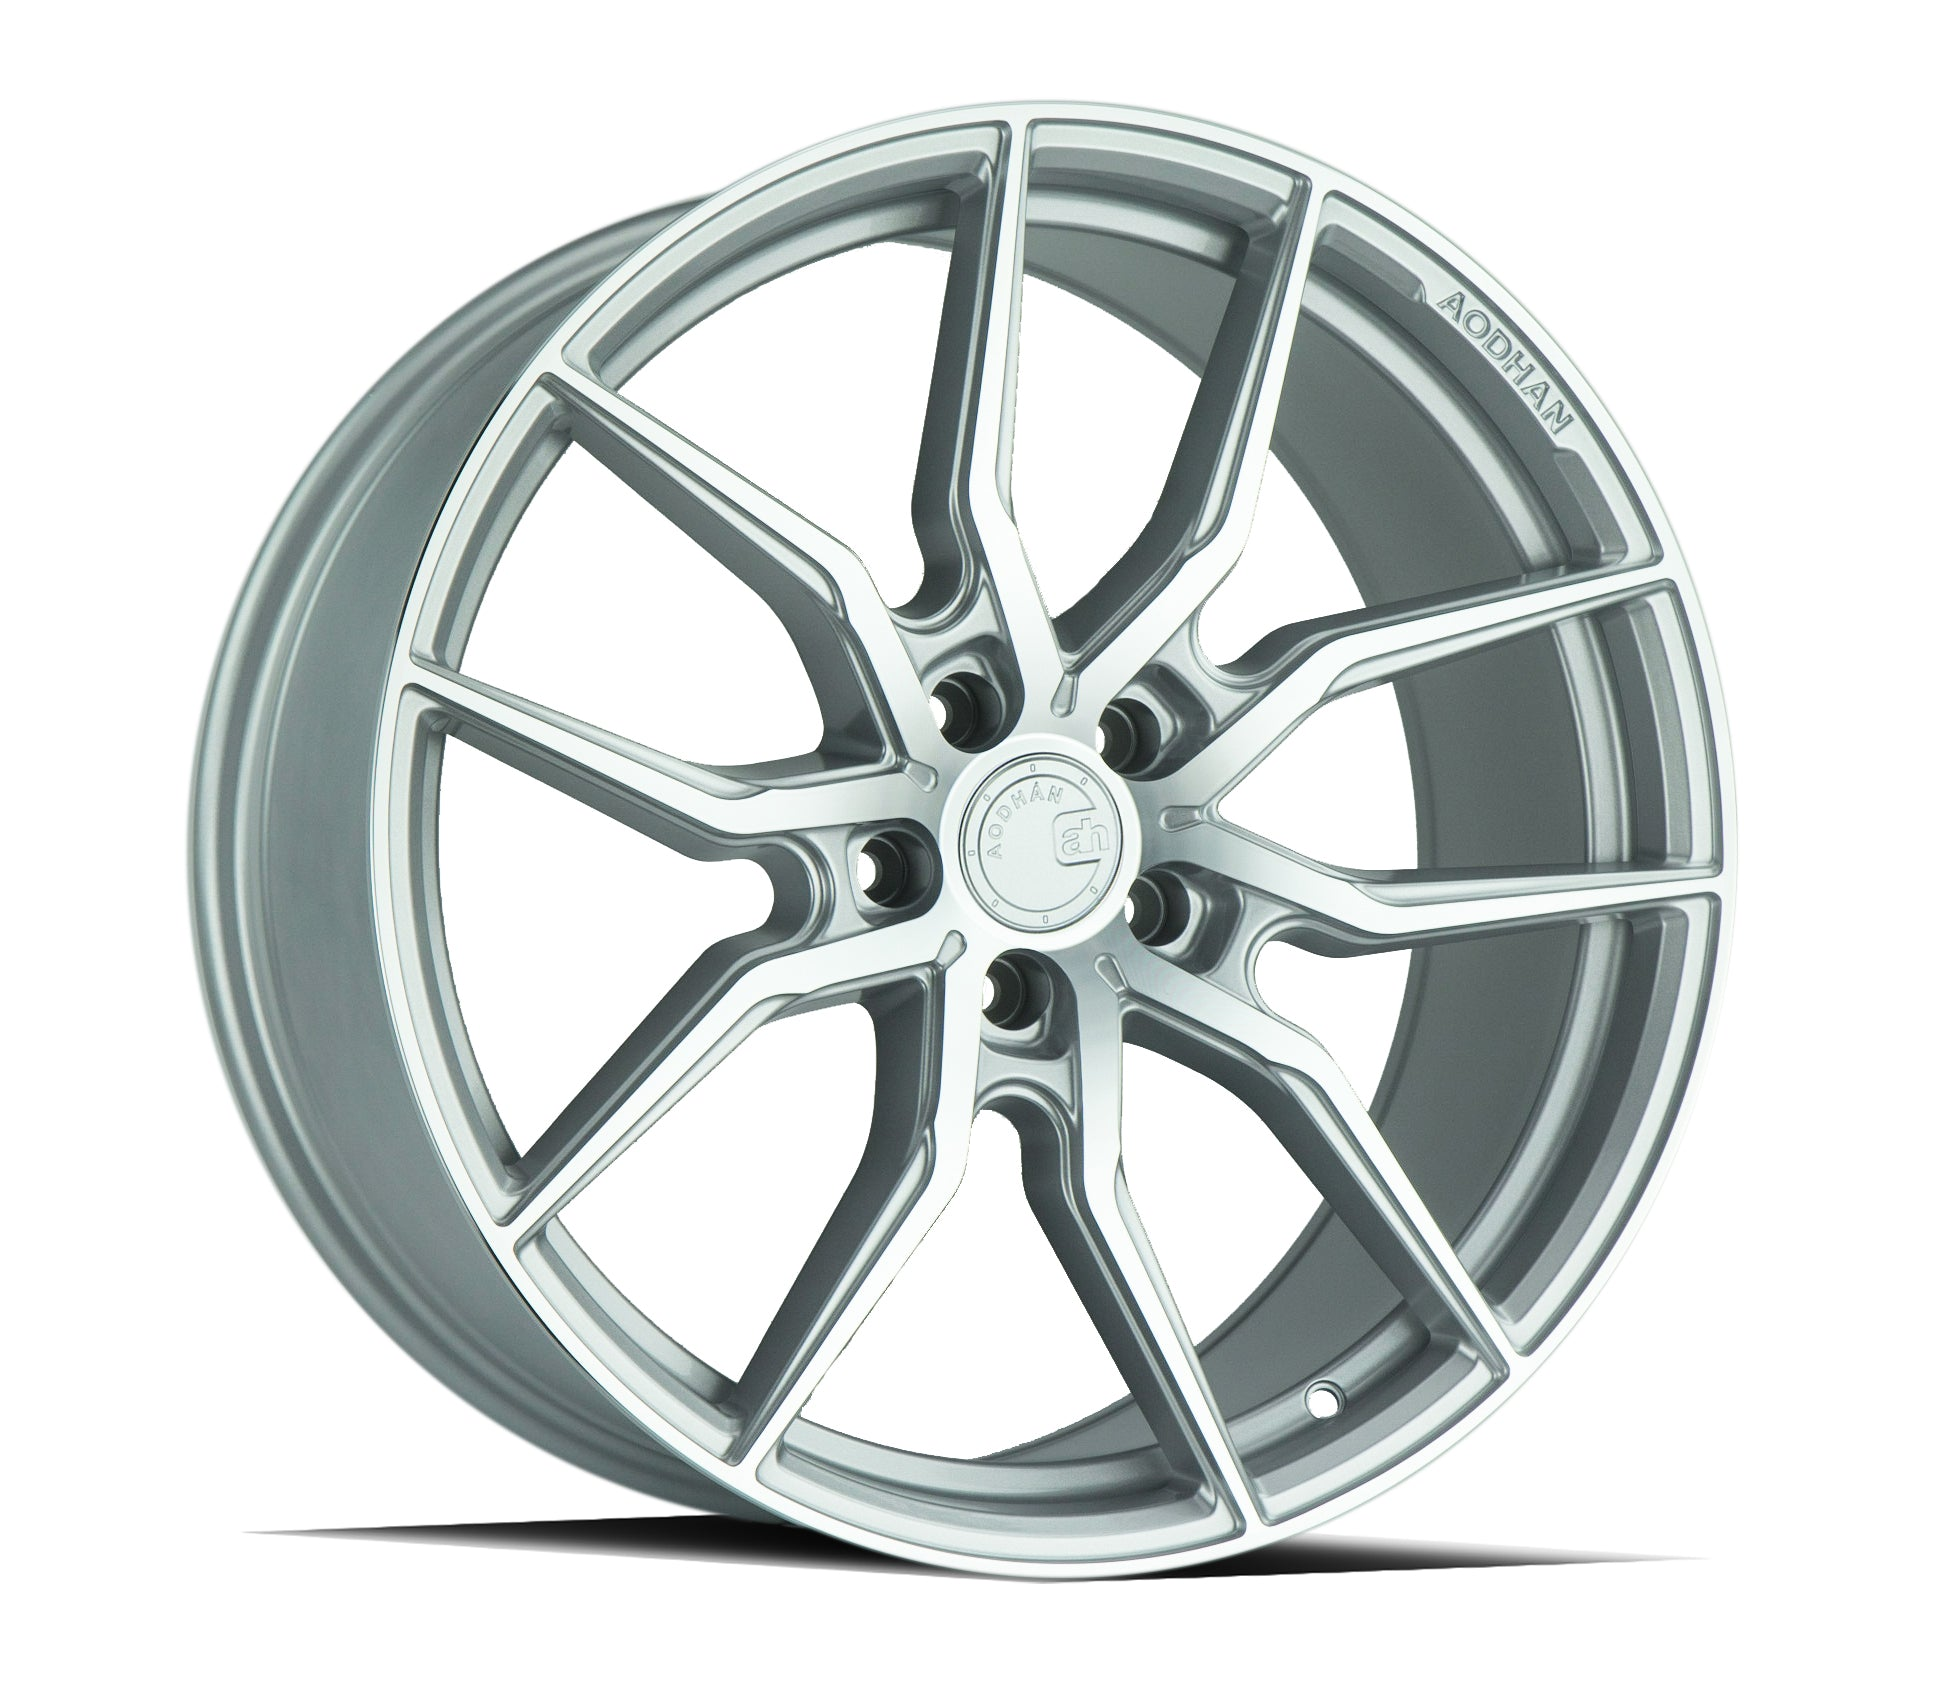 Aodhan AFF1 20x9 5x114.3 +32 Gloss Silver Machined Face